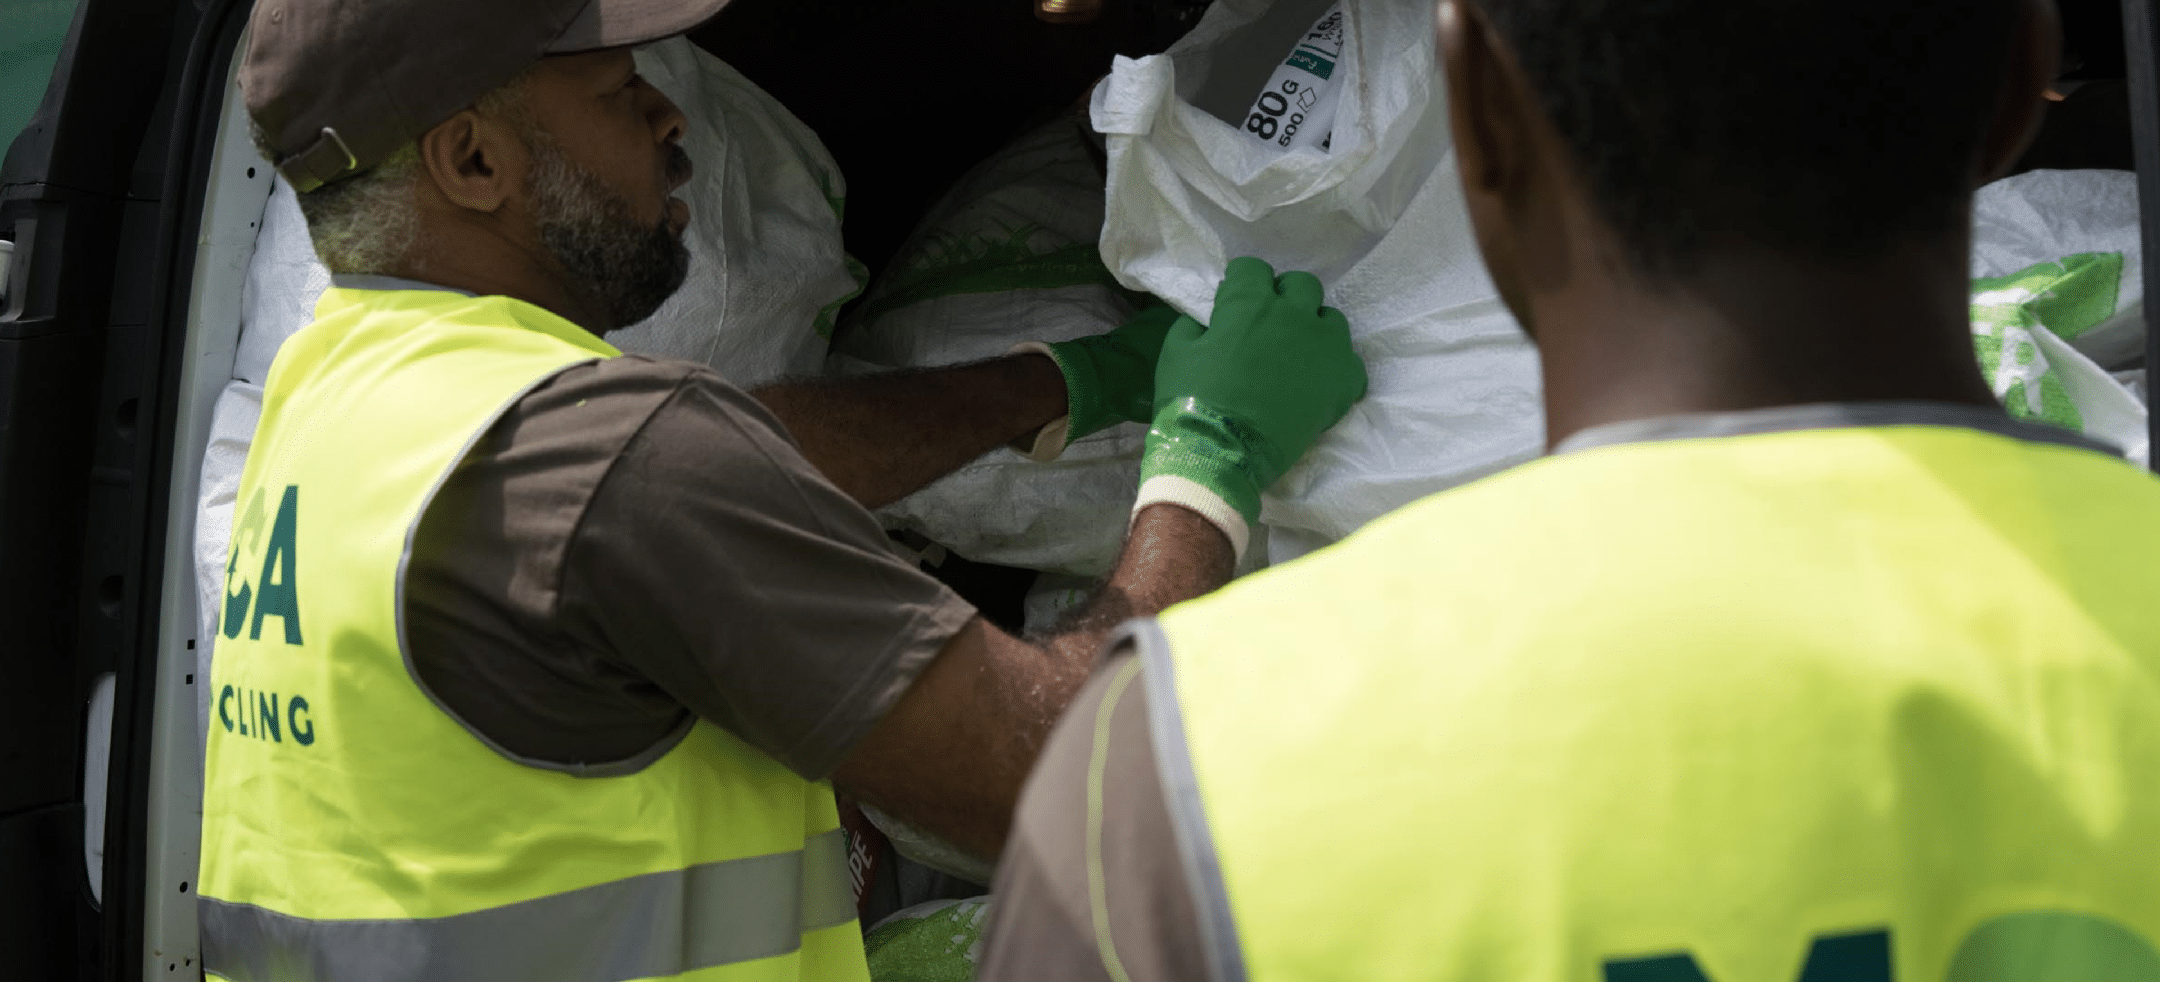 The frequency of waste collection is determined by the volume of waste generated and your needs.